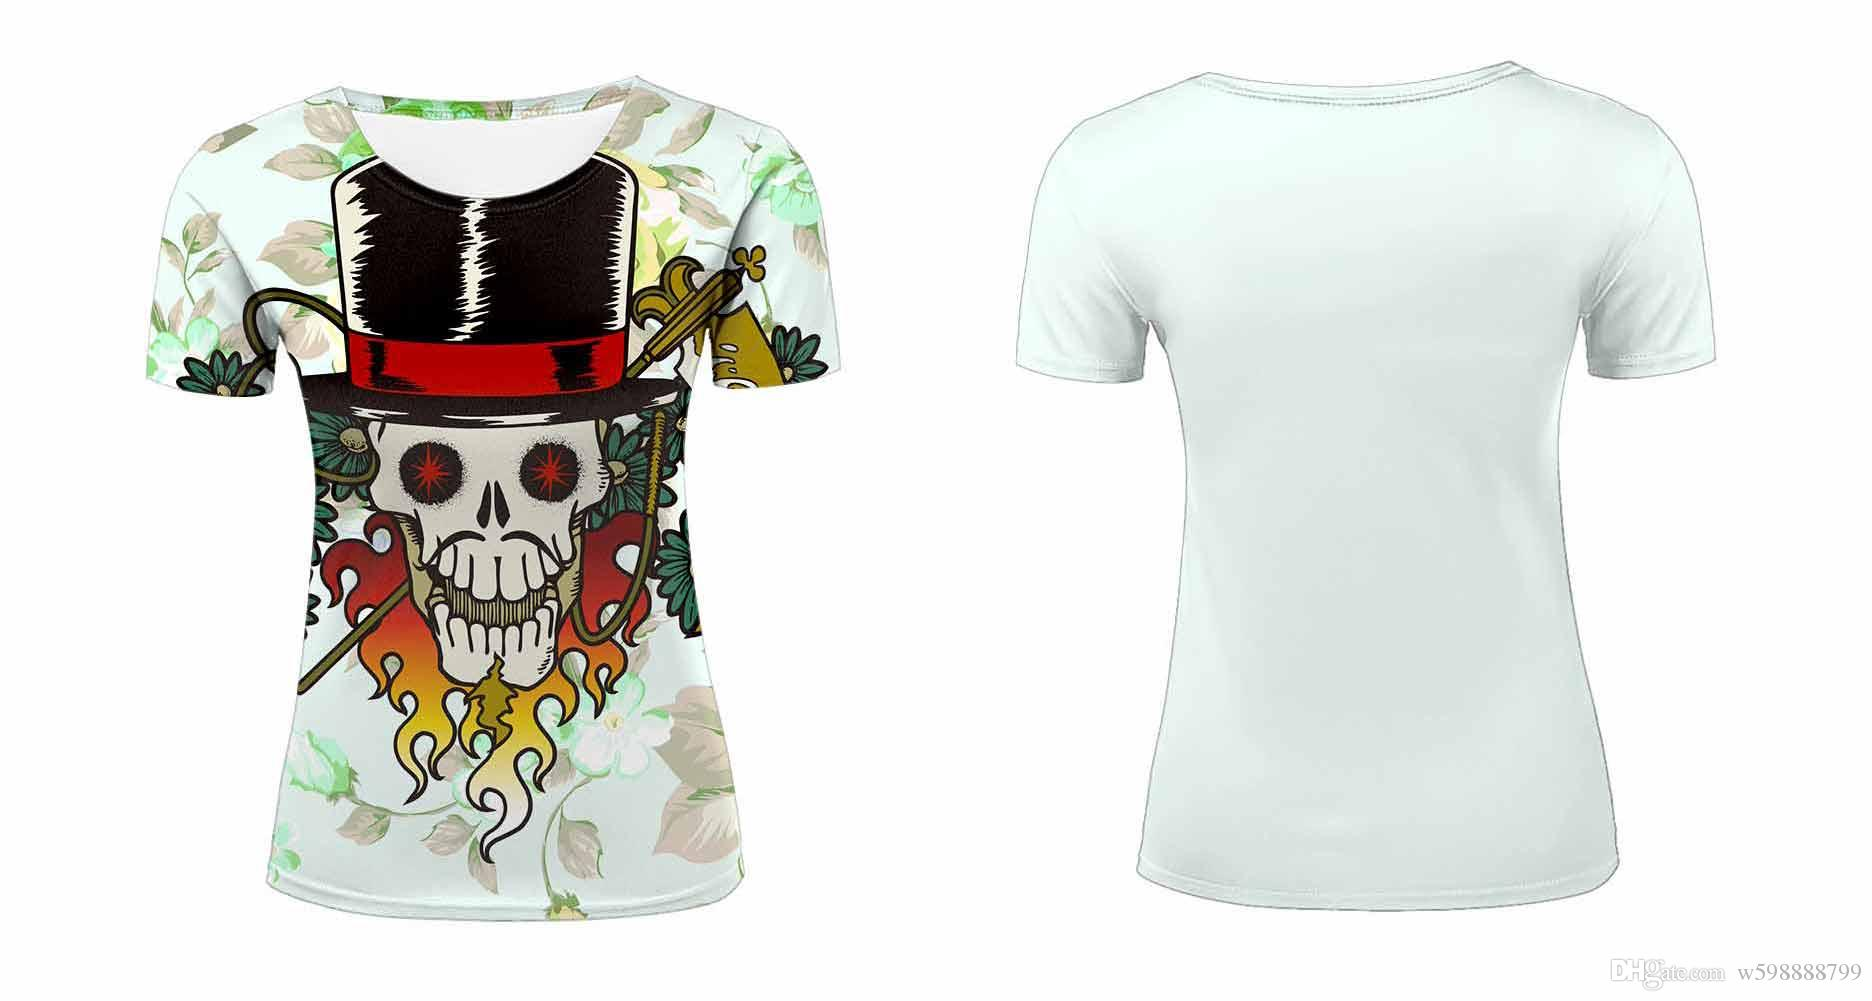 Women summer t shirts kinds of beautiful flowers skull paint women summer t shirts kinds of beautiful flowers skull paint graffiti lotus colorful cool abstract style prints short sleeve tees top m422n design and buy t izmirmasajfo